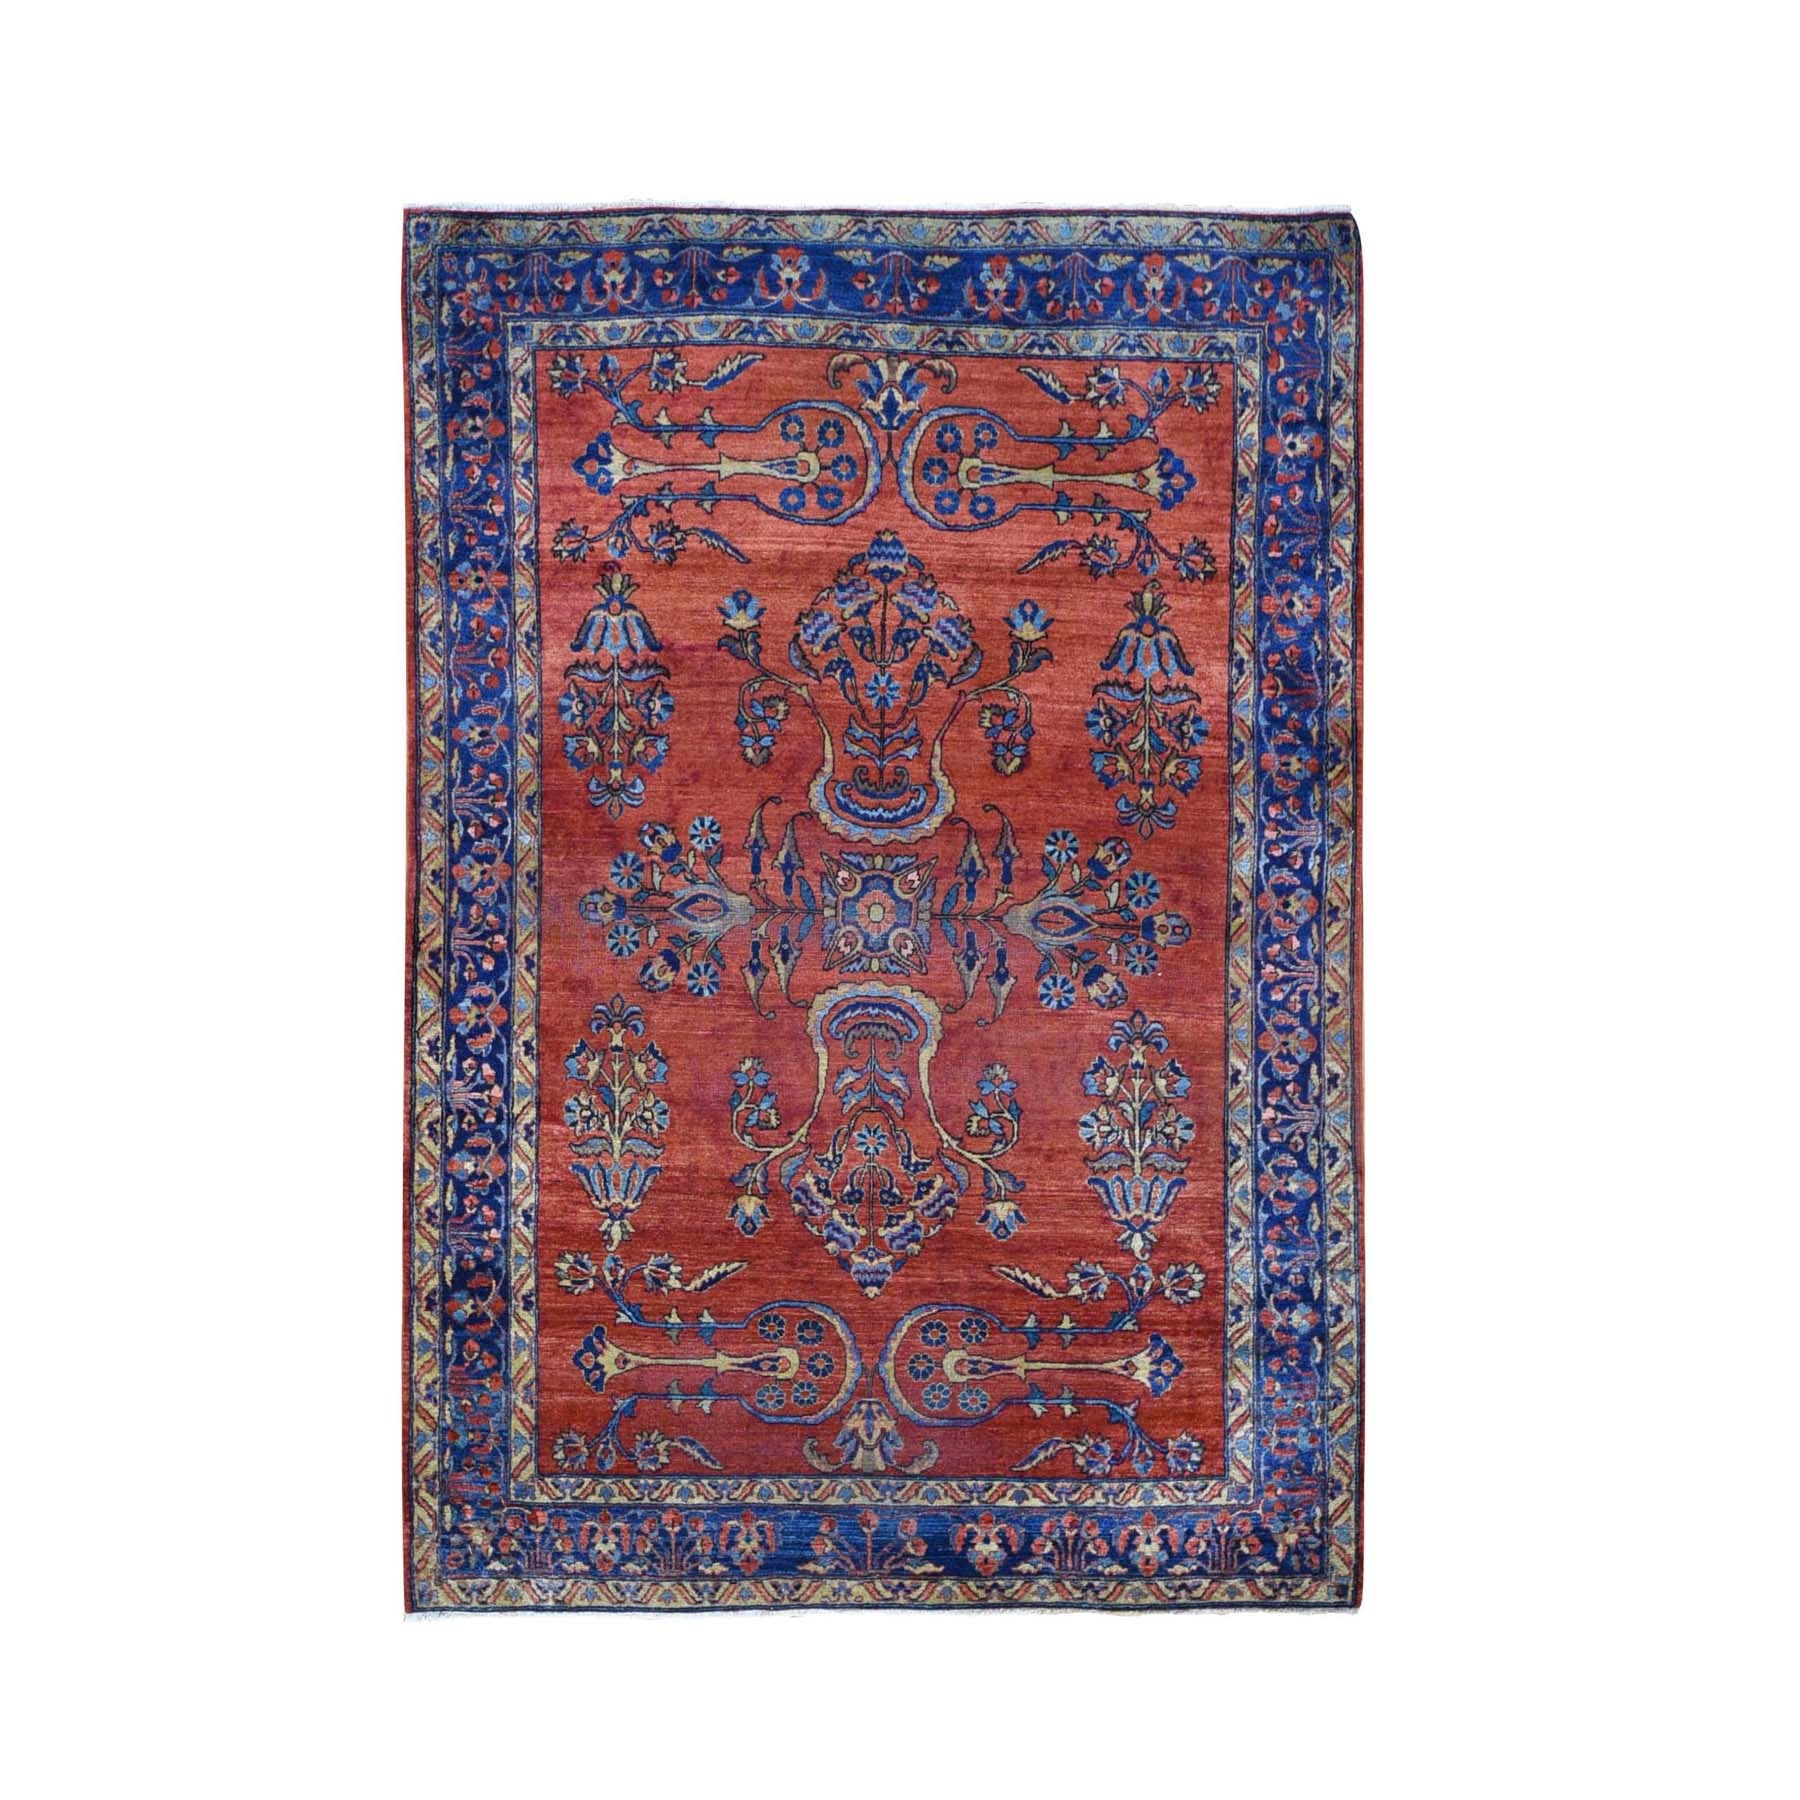 Antique Collection Hand Knotted Red Rug No: 01118590